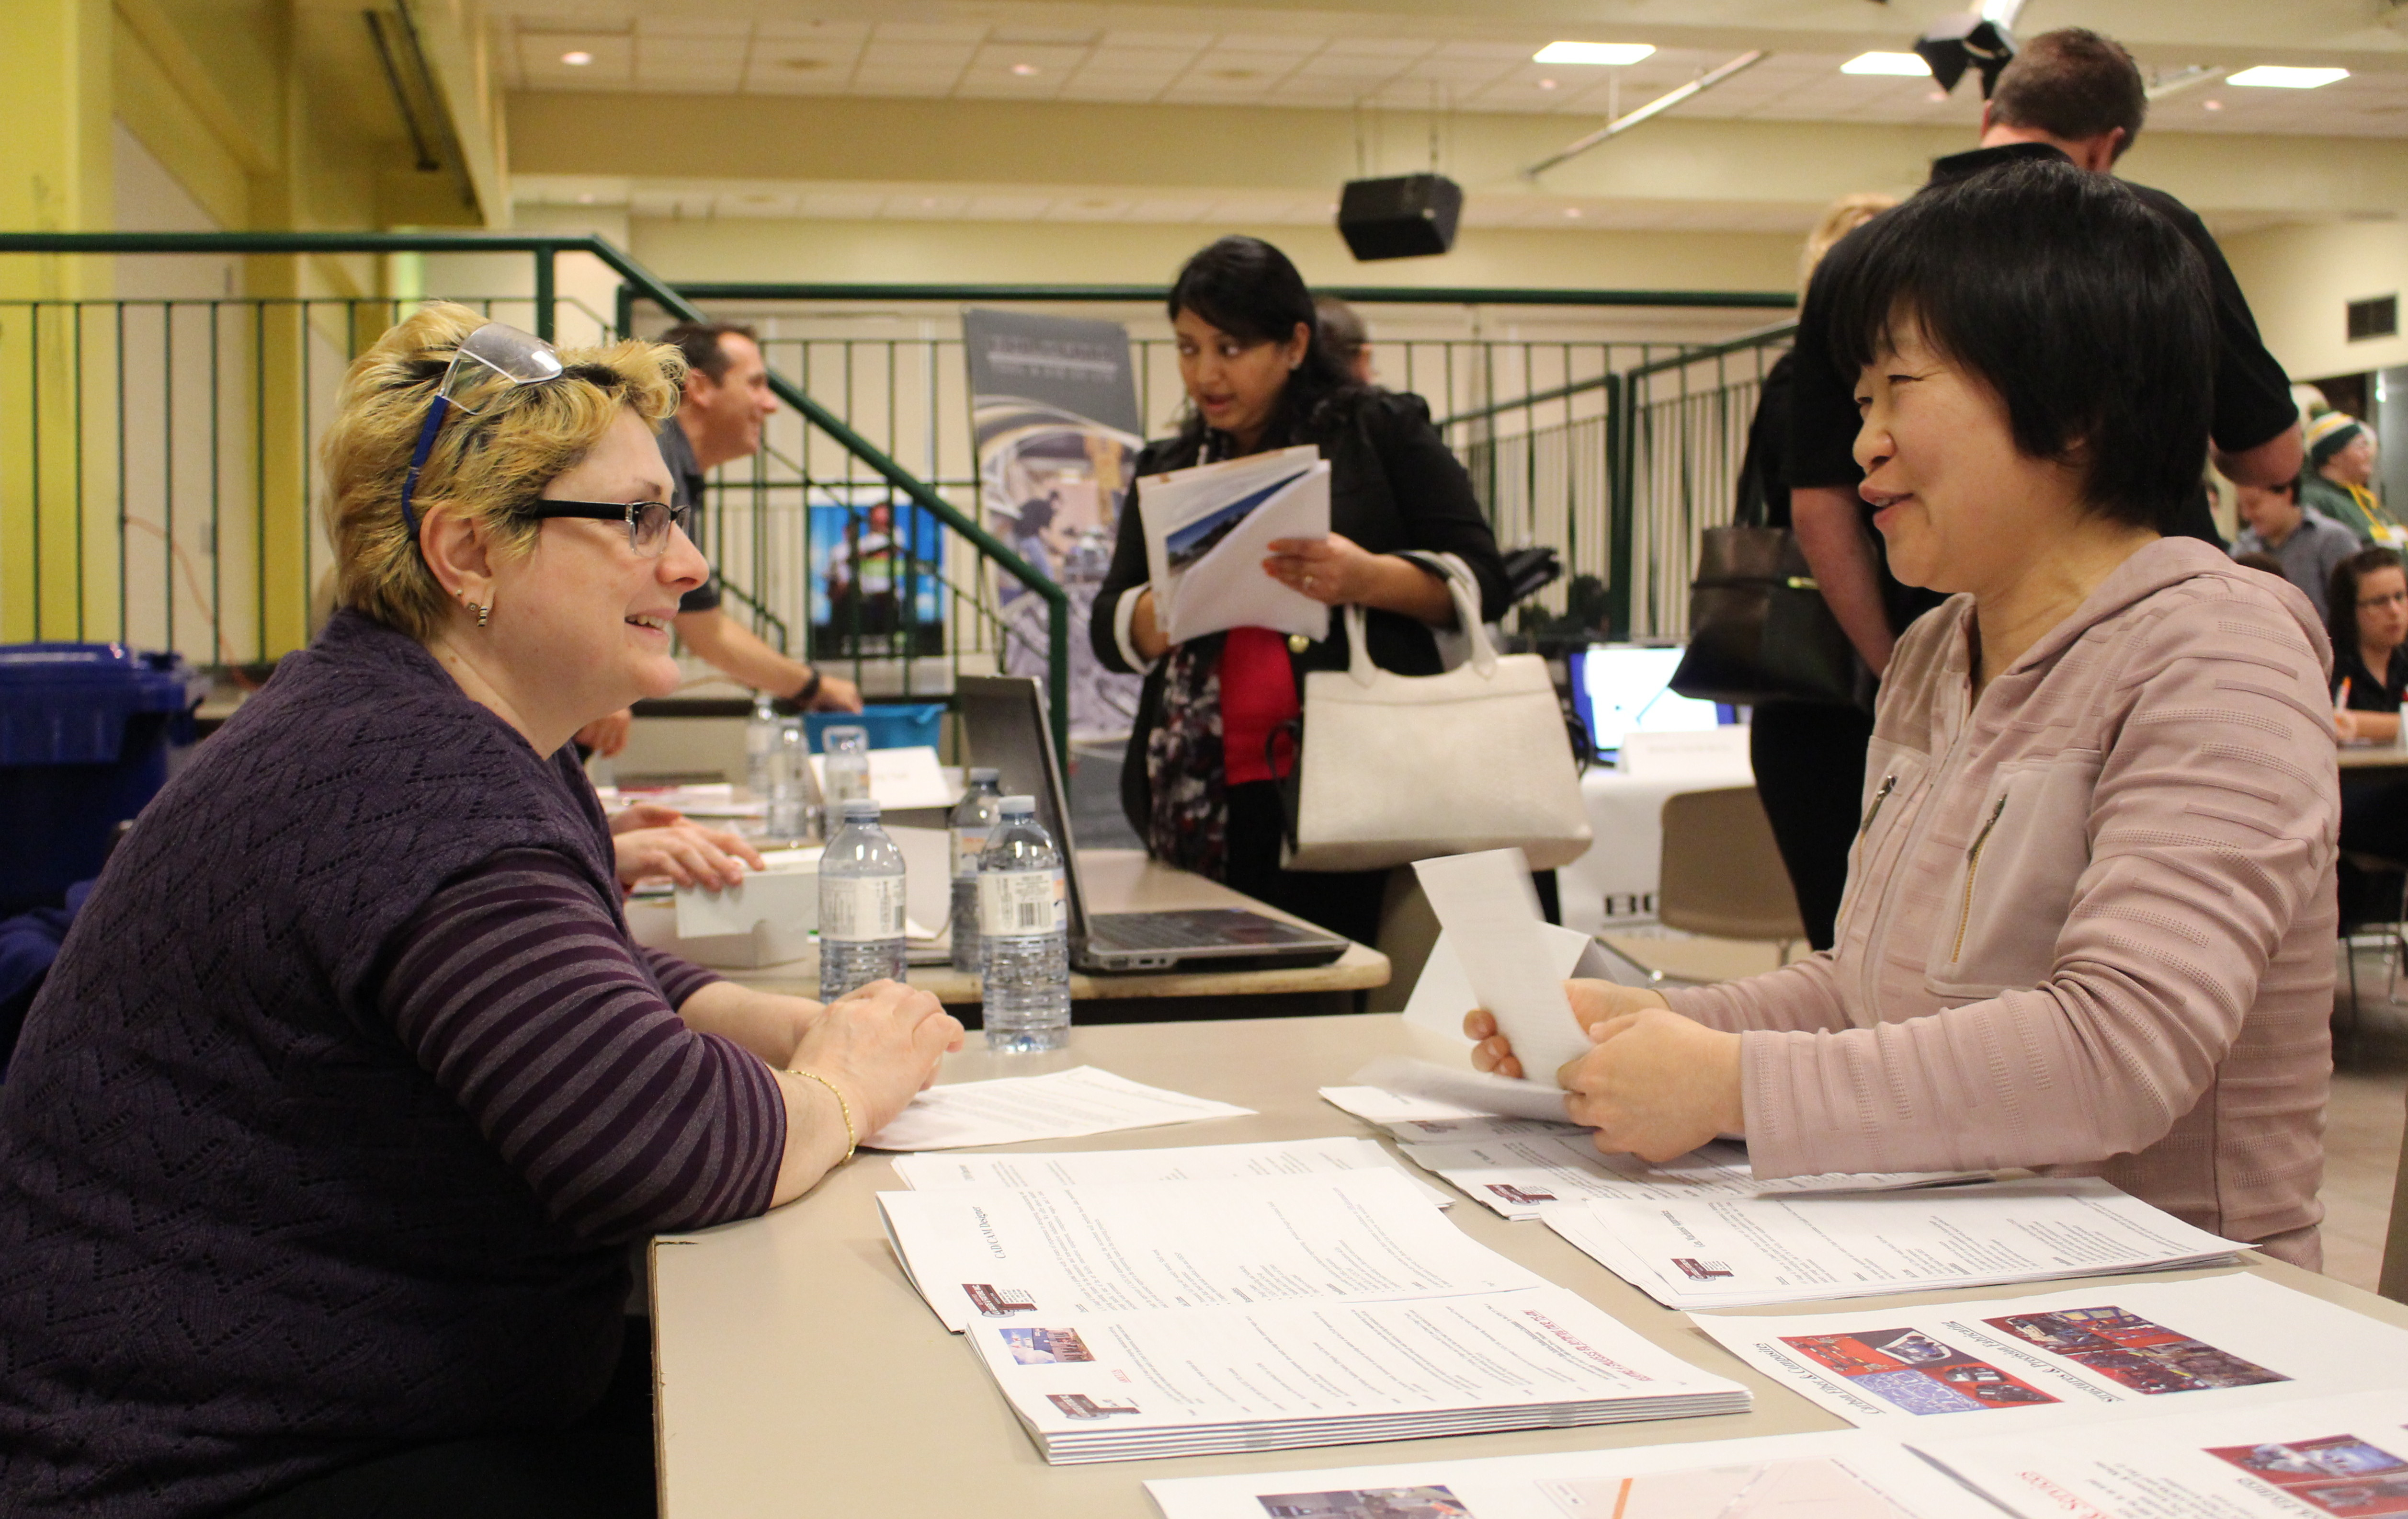 St. Clair College Industrial Mechanics students sit down with employers during a skilled trades job fair at the schools main campus, February 18, 2015. (Photo by Mike Vlasveld)